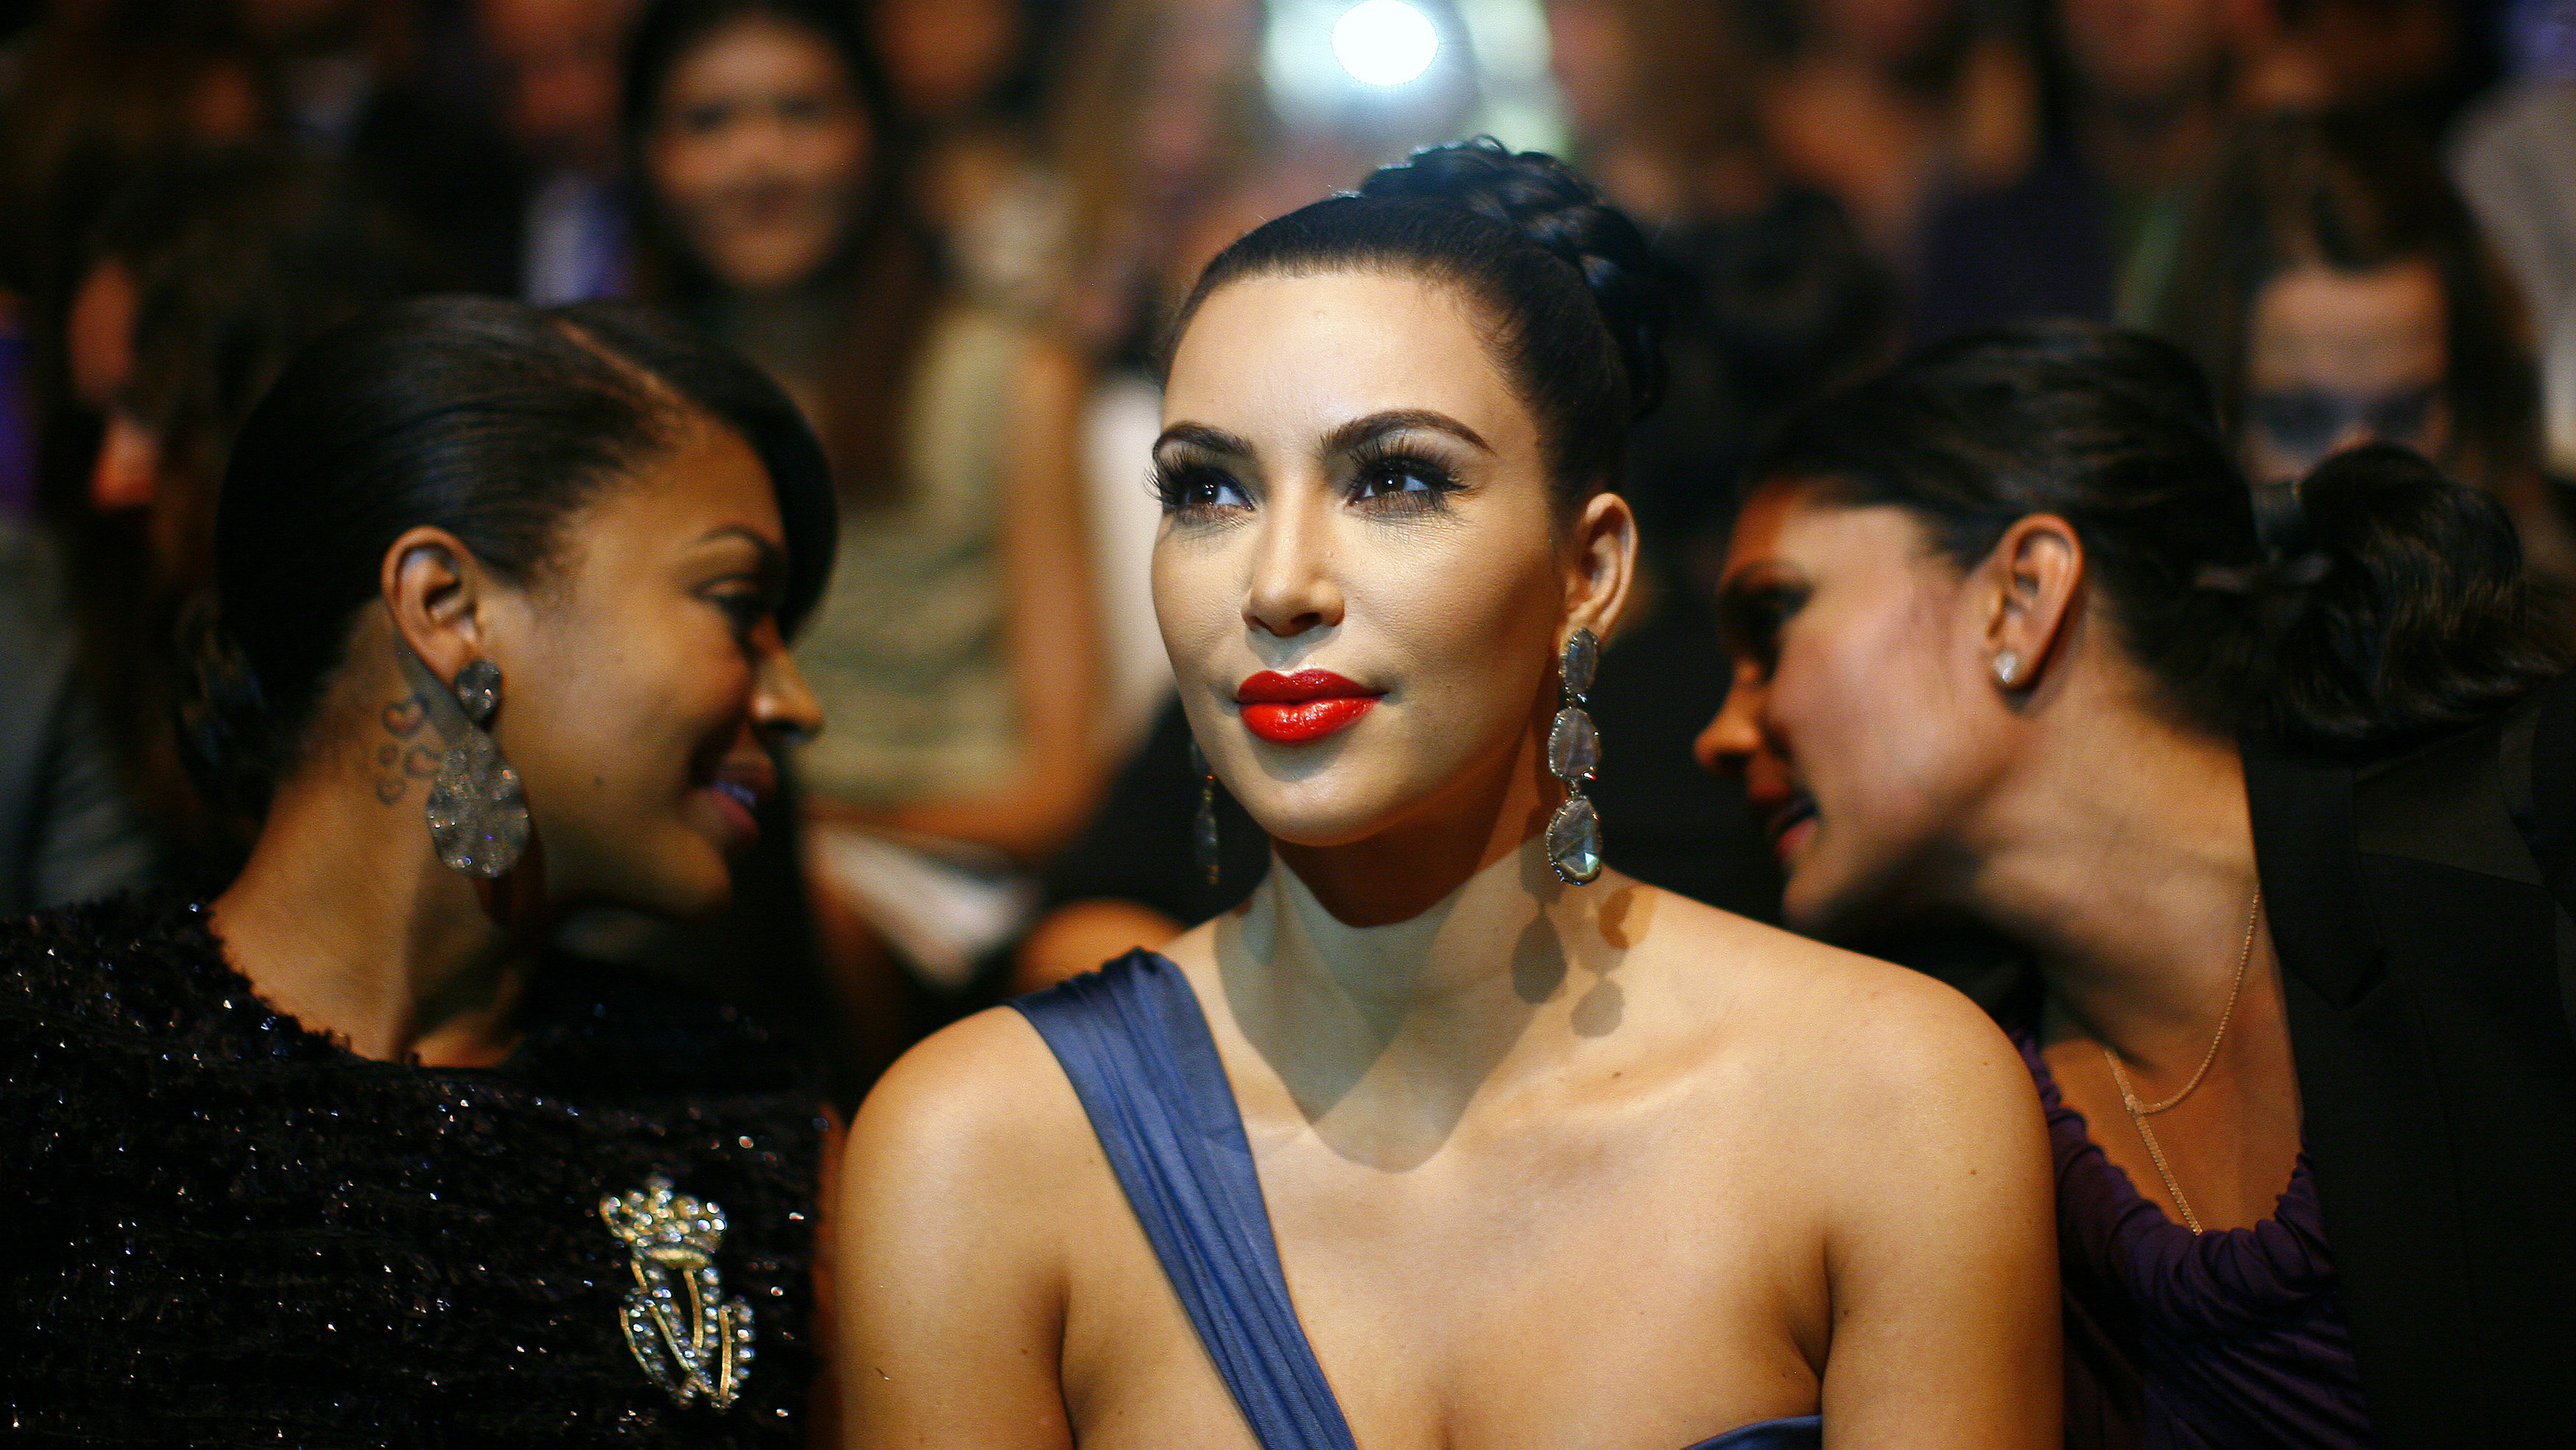 Television personality Kim Kardashian attends the Vera Wang Spring/Summer 2012 collection show during New York Fashion Week September 13, 2011. REUTERS/Eric Thayer (UNITED STATES - Tags: ENTERTAINMENT FASHION HEADSHOT TPX IMAGES OF THE DAY)